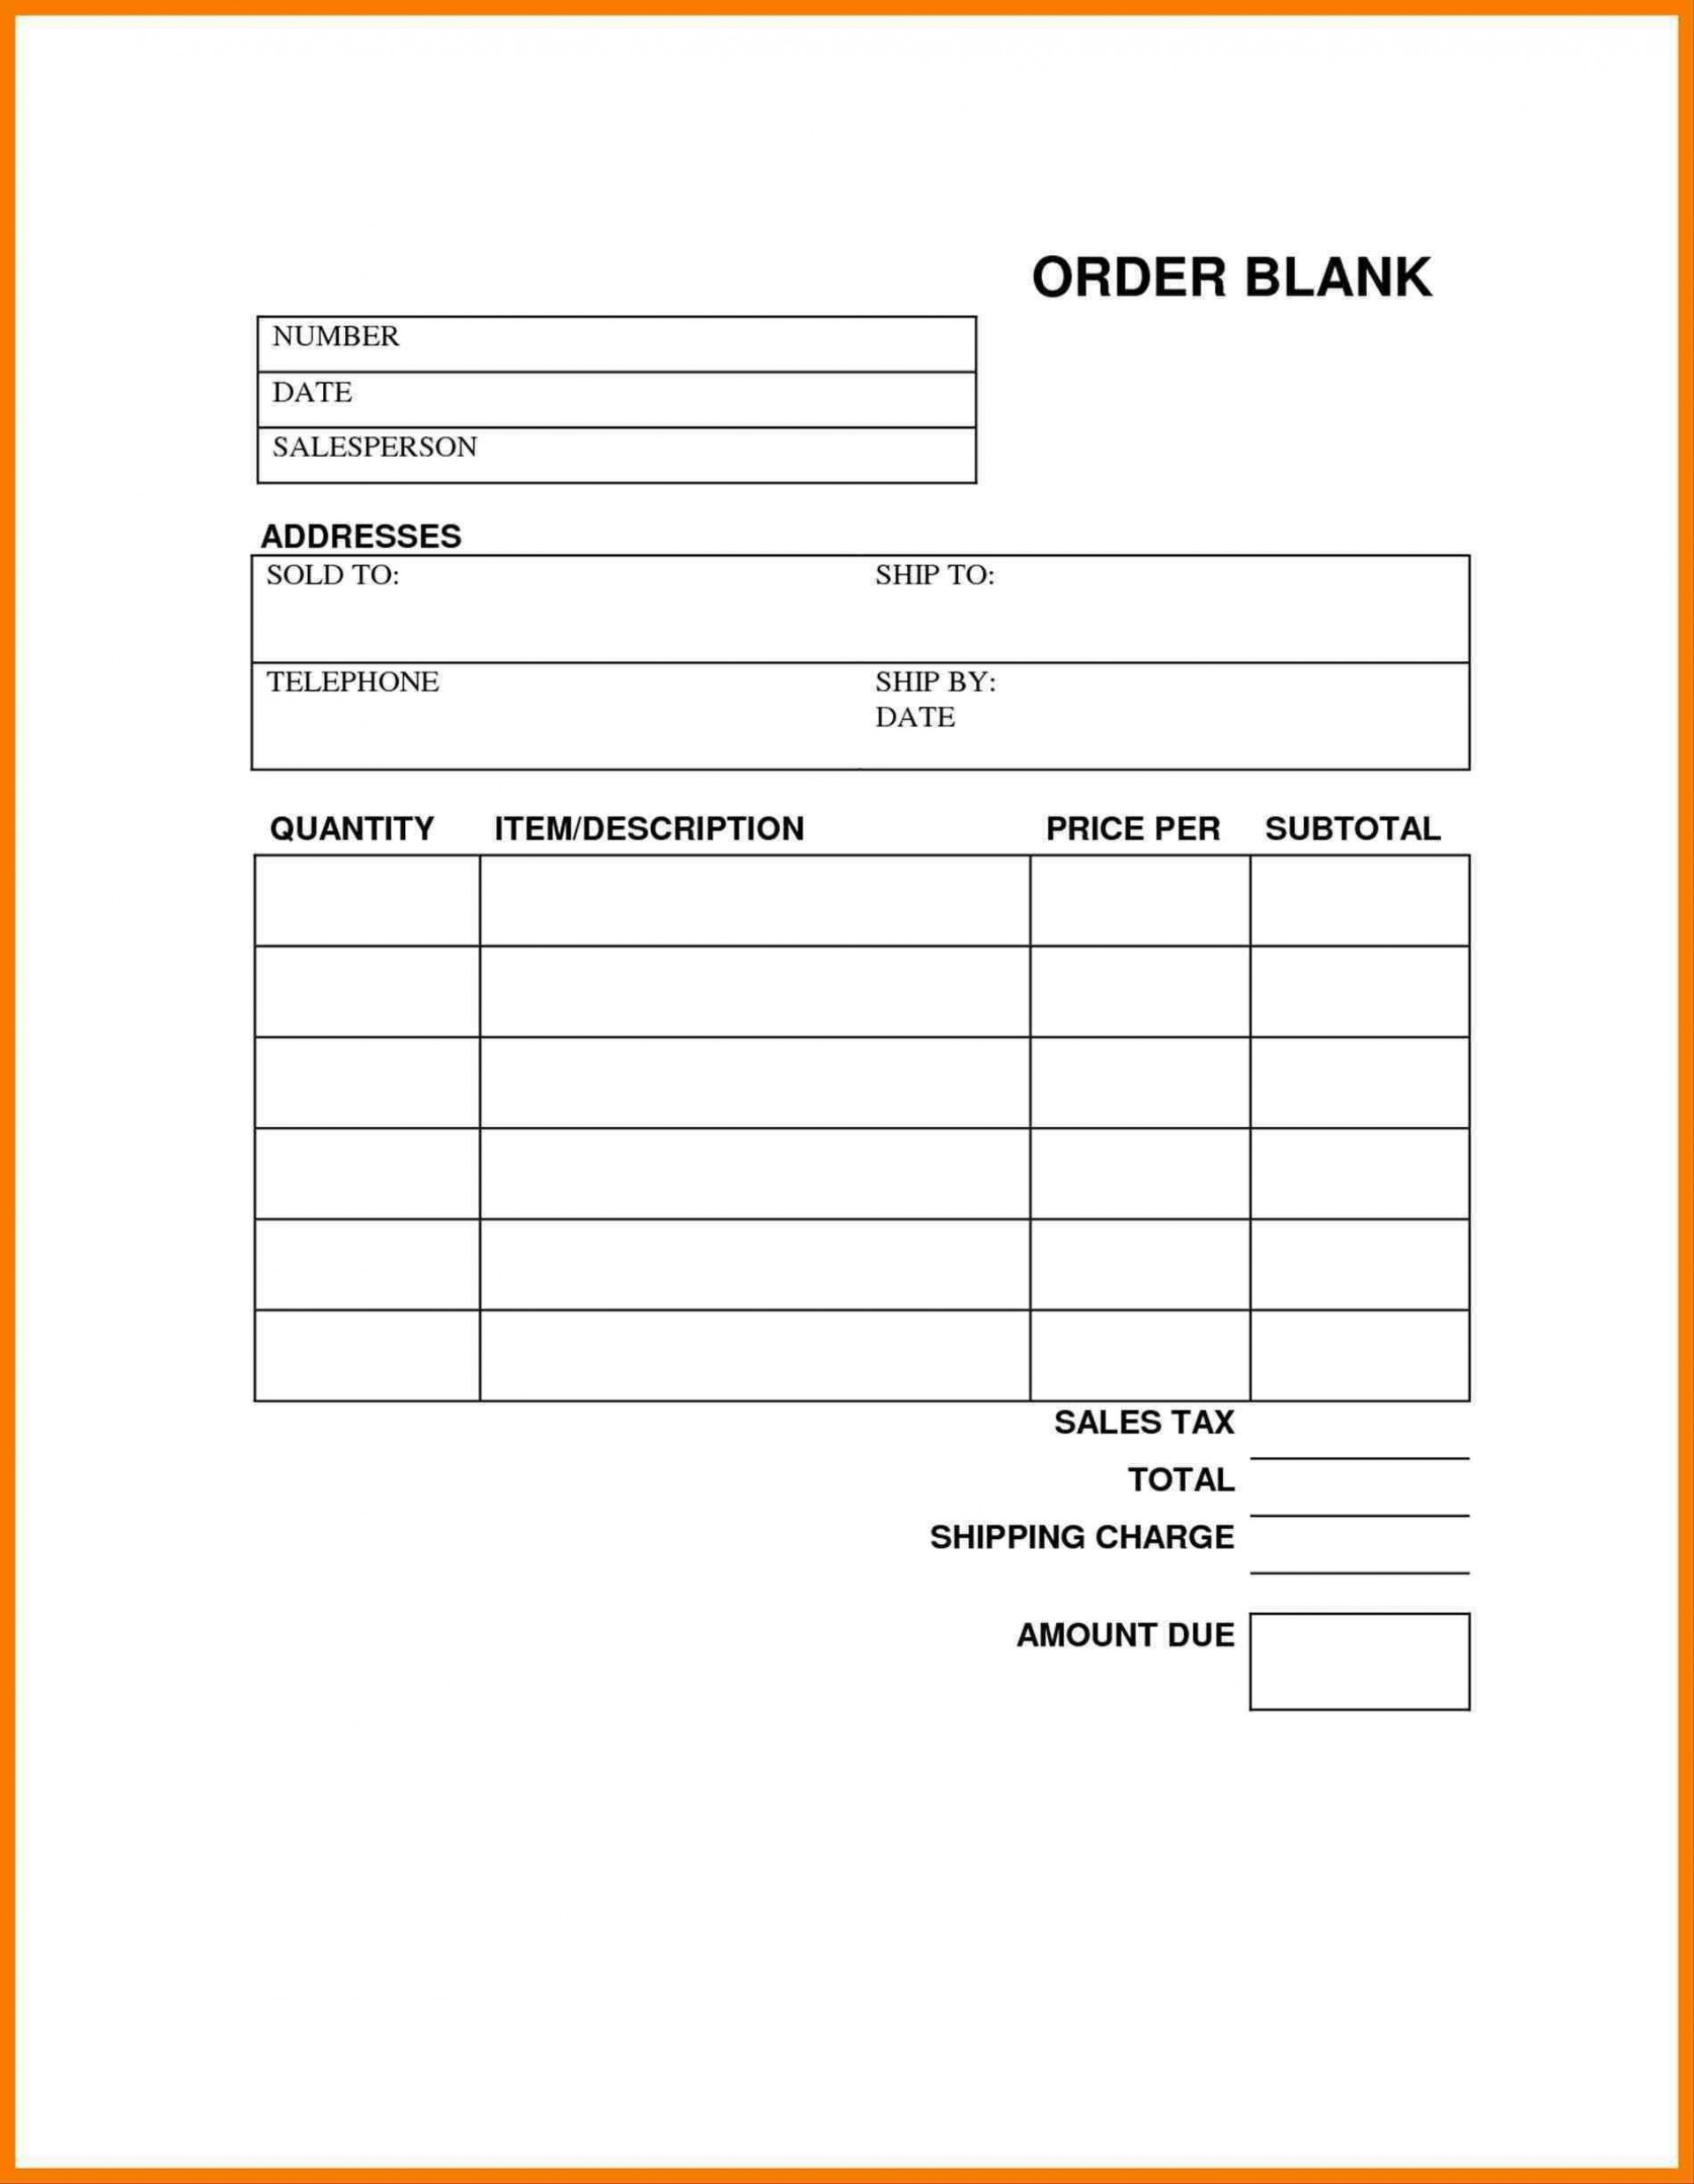 004 Awful Printable Order Form Template High Resolution  Templates Fundraiser Food Cake1920